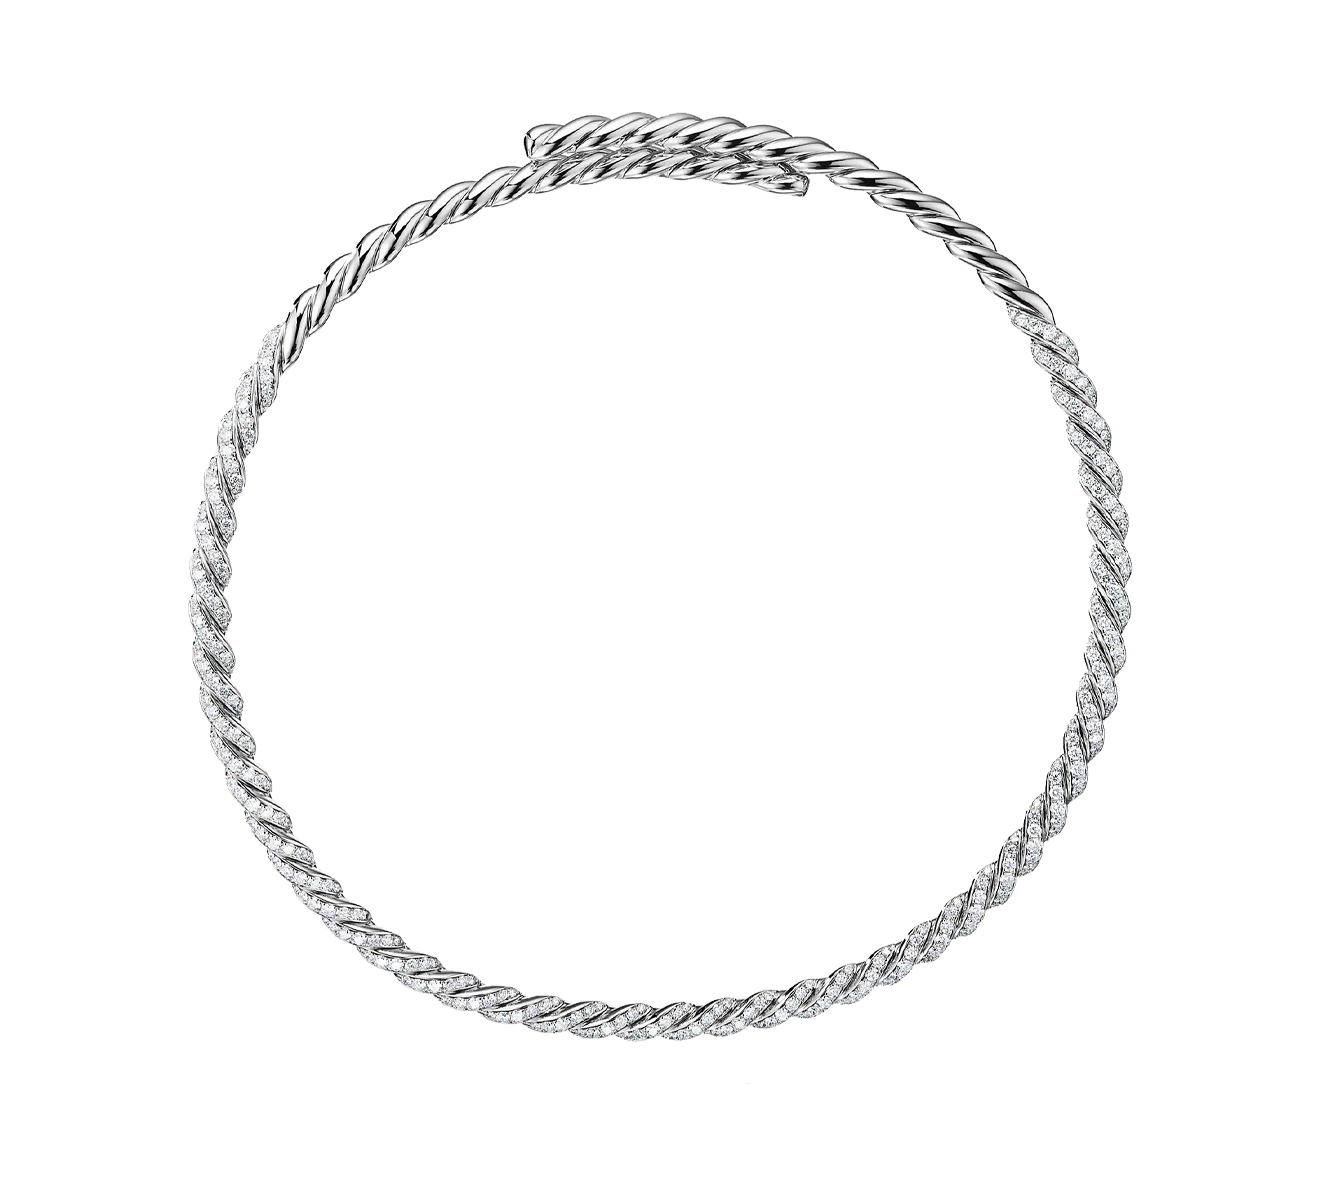 Колье DAVID YURMAN Pave Flex N14271D8WADI - фото 1 – Mercury